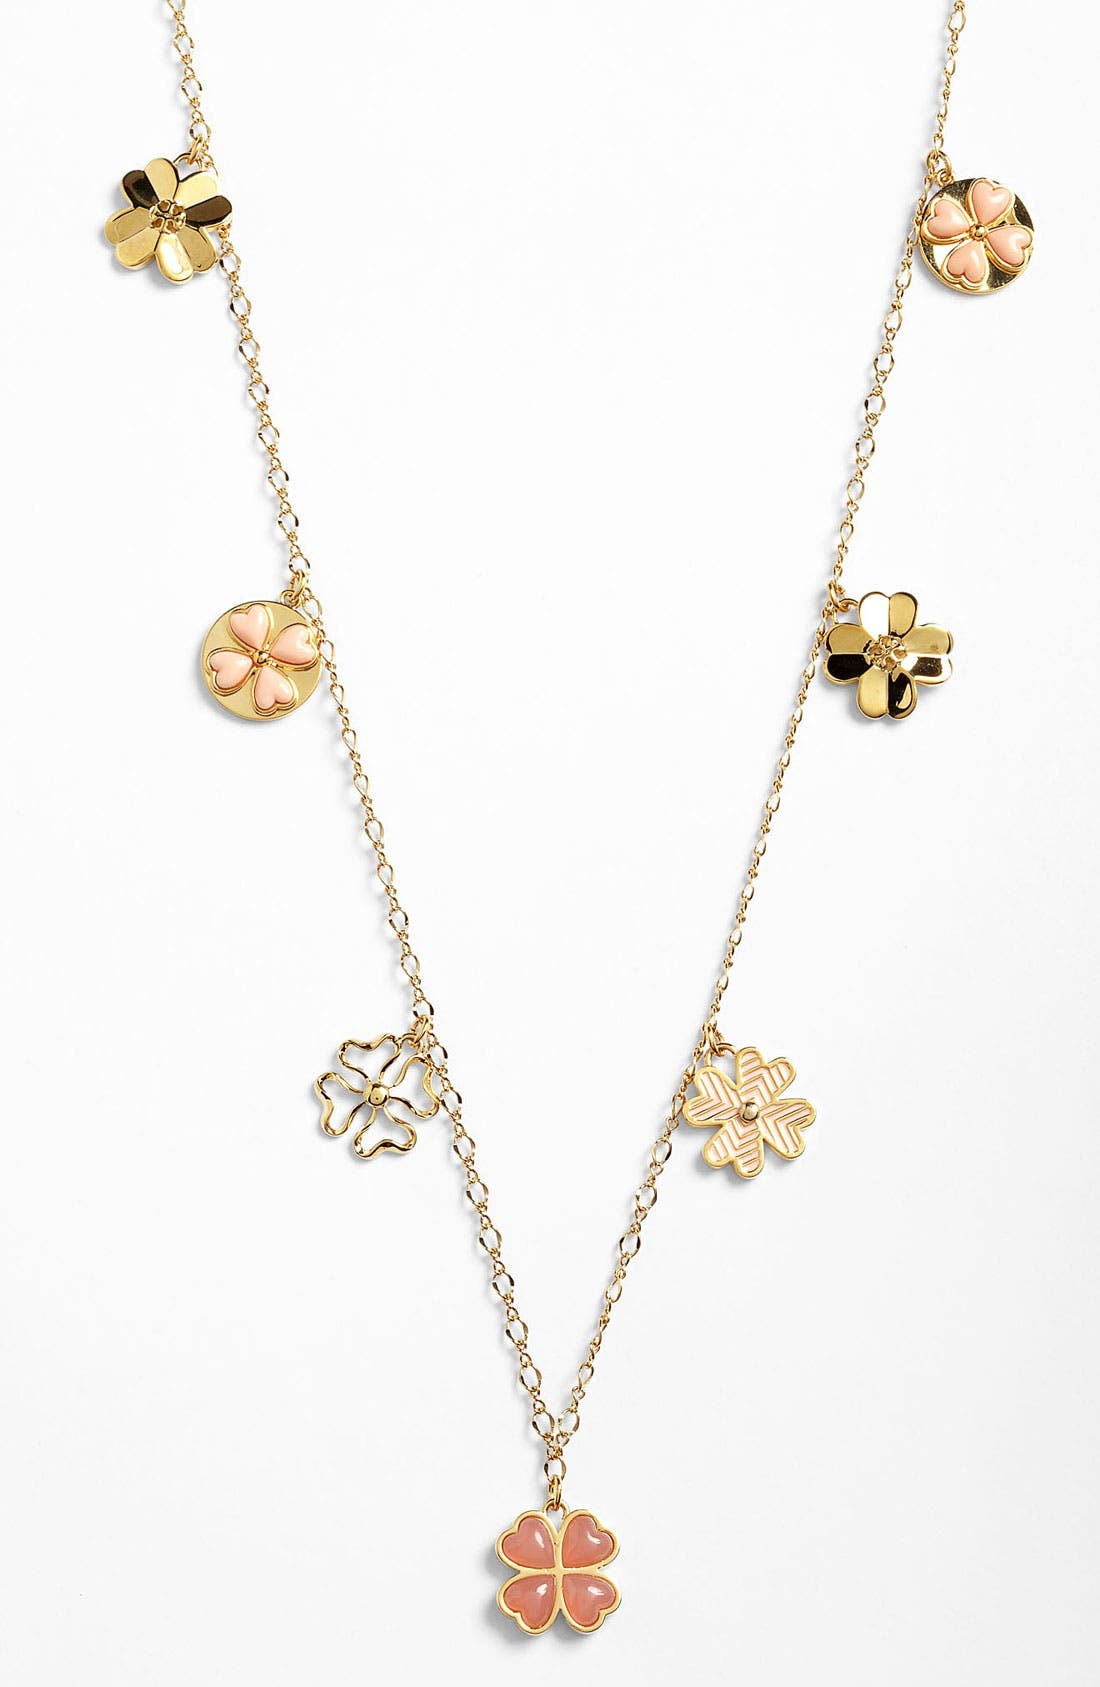 Alternate Image 1 Selected - Tory Burch 'Shawn' Long Station Necklace